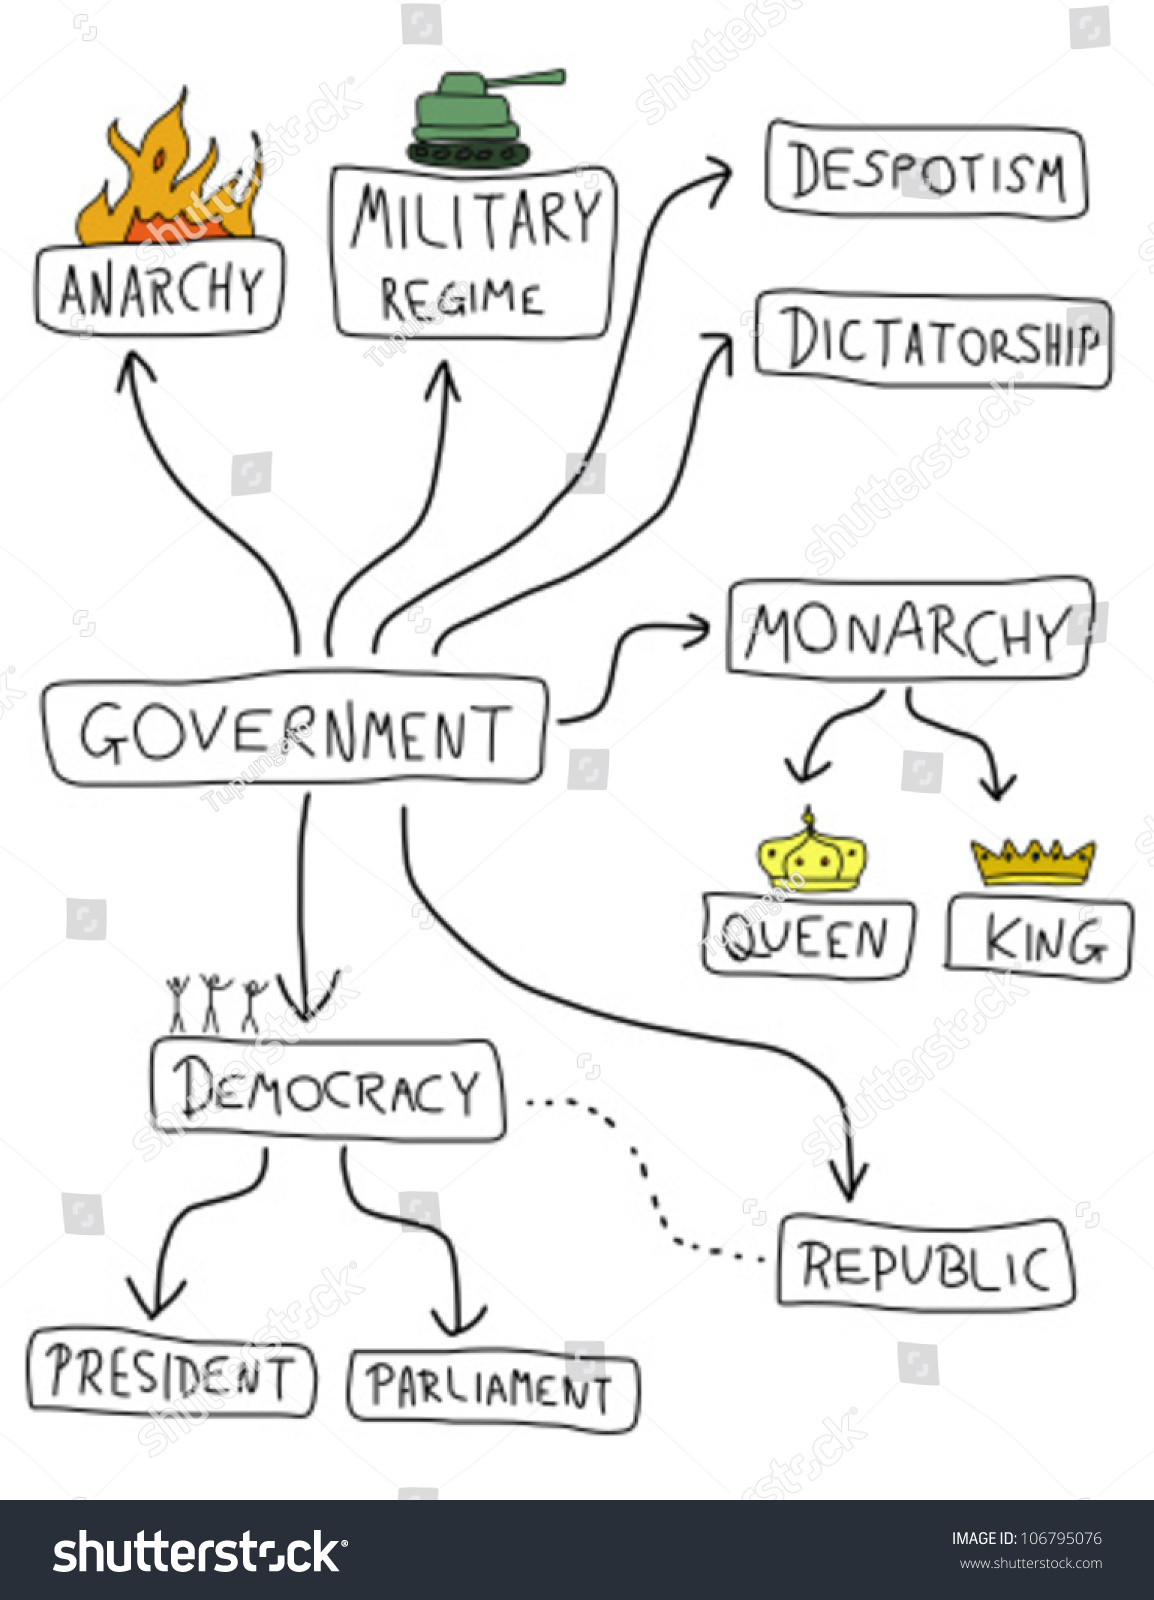 democratic government and monarchy Start studying democracy, dictatorship, and monarchy learn vocabulary, terms, and more with flashcards, games, and other study tools.